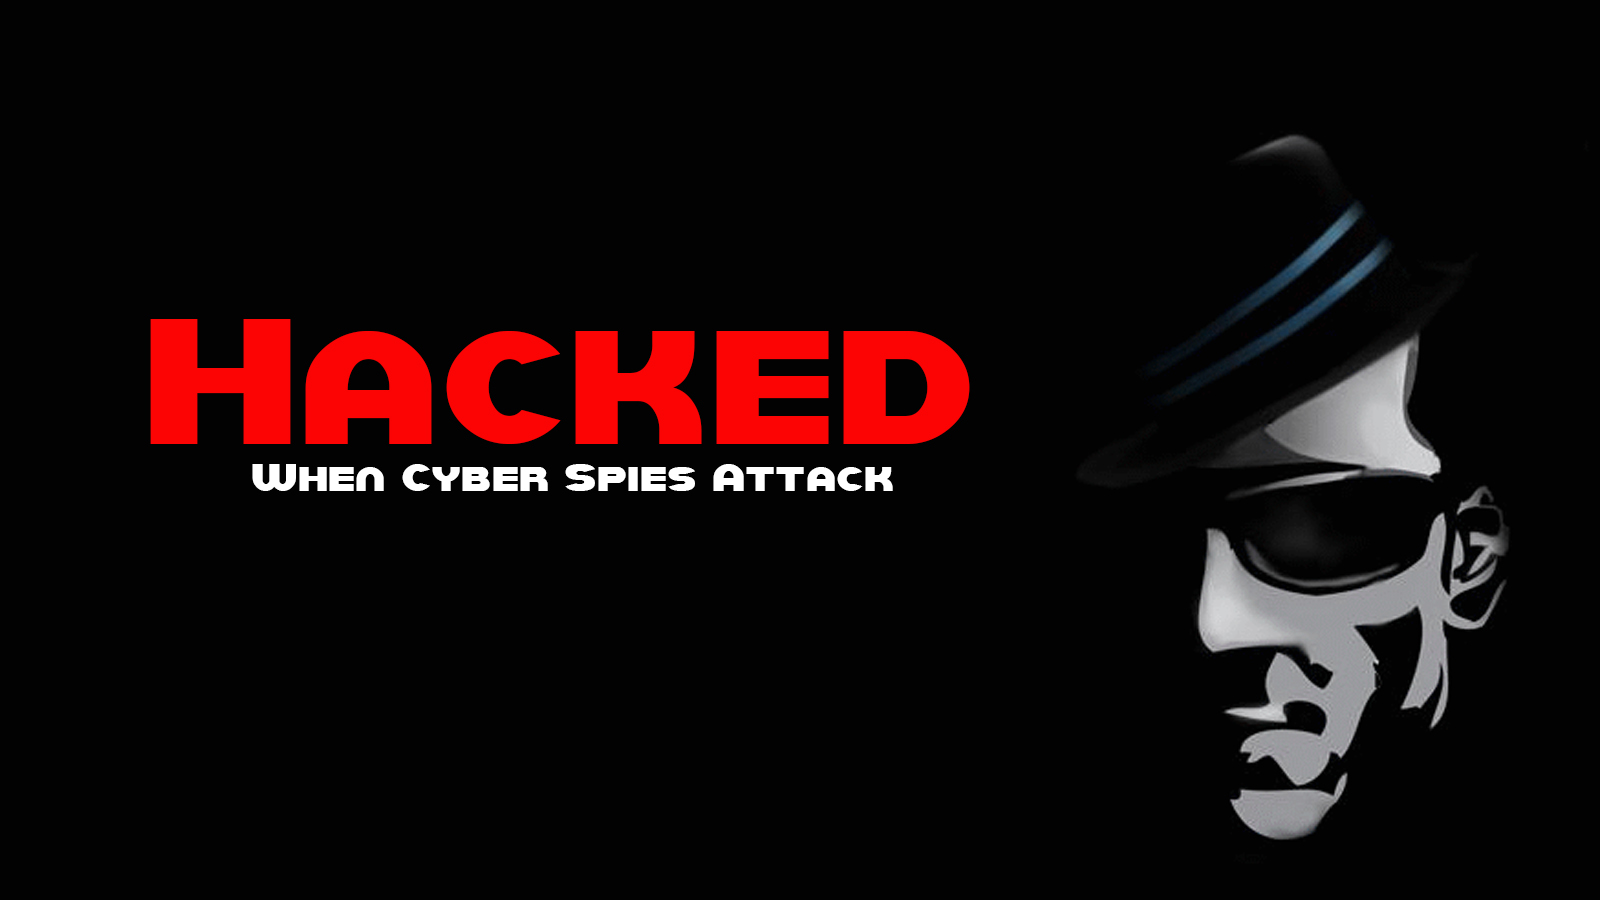 hacked when cyber spies attack documentary film